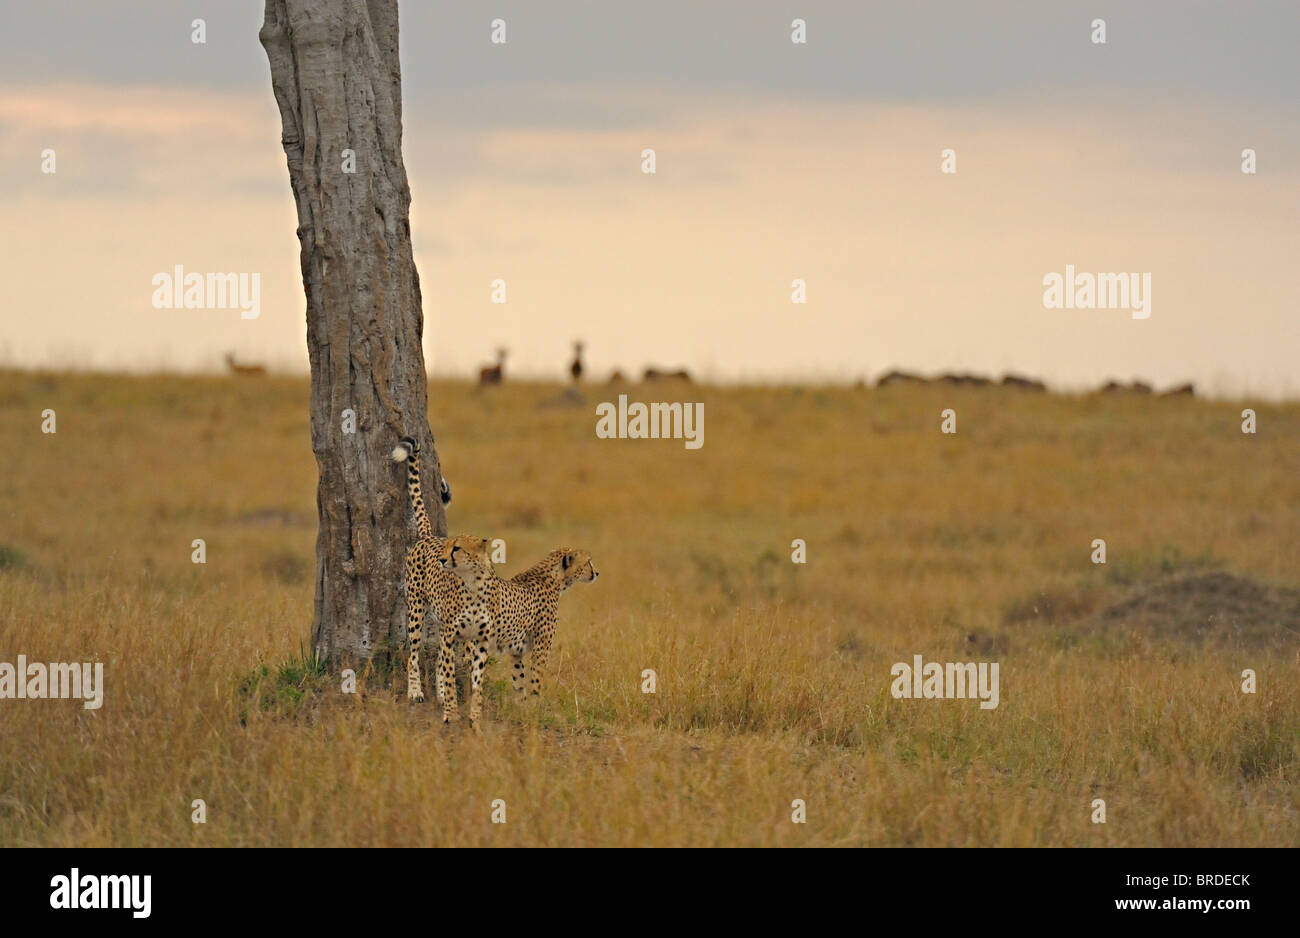 Two Cheetahs marking a tree in the grasslands of Masai Mara in Kenya, Africa - Stock Image